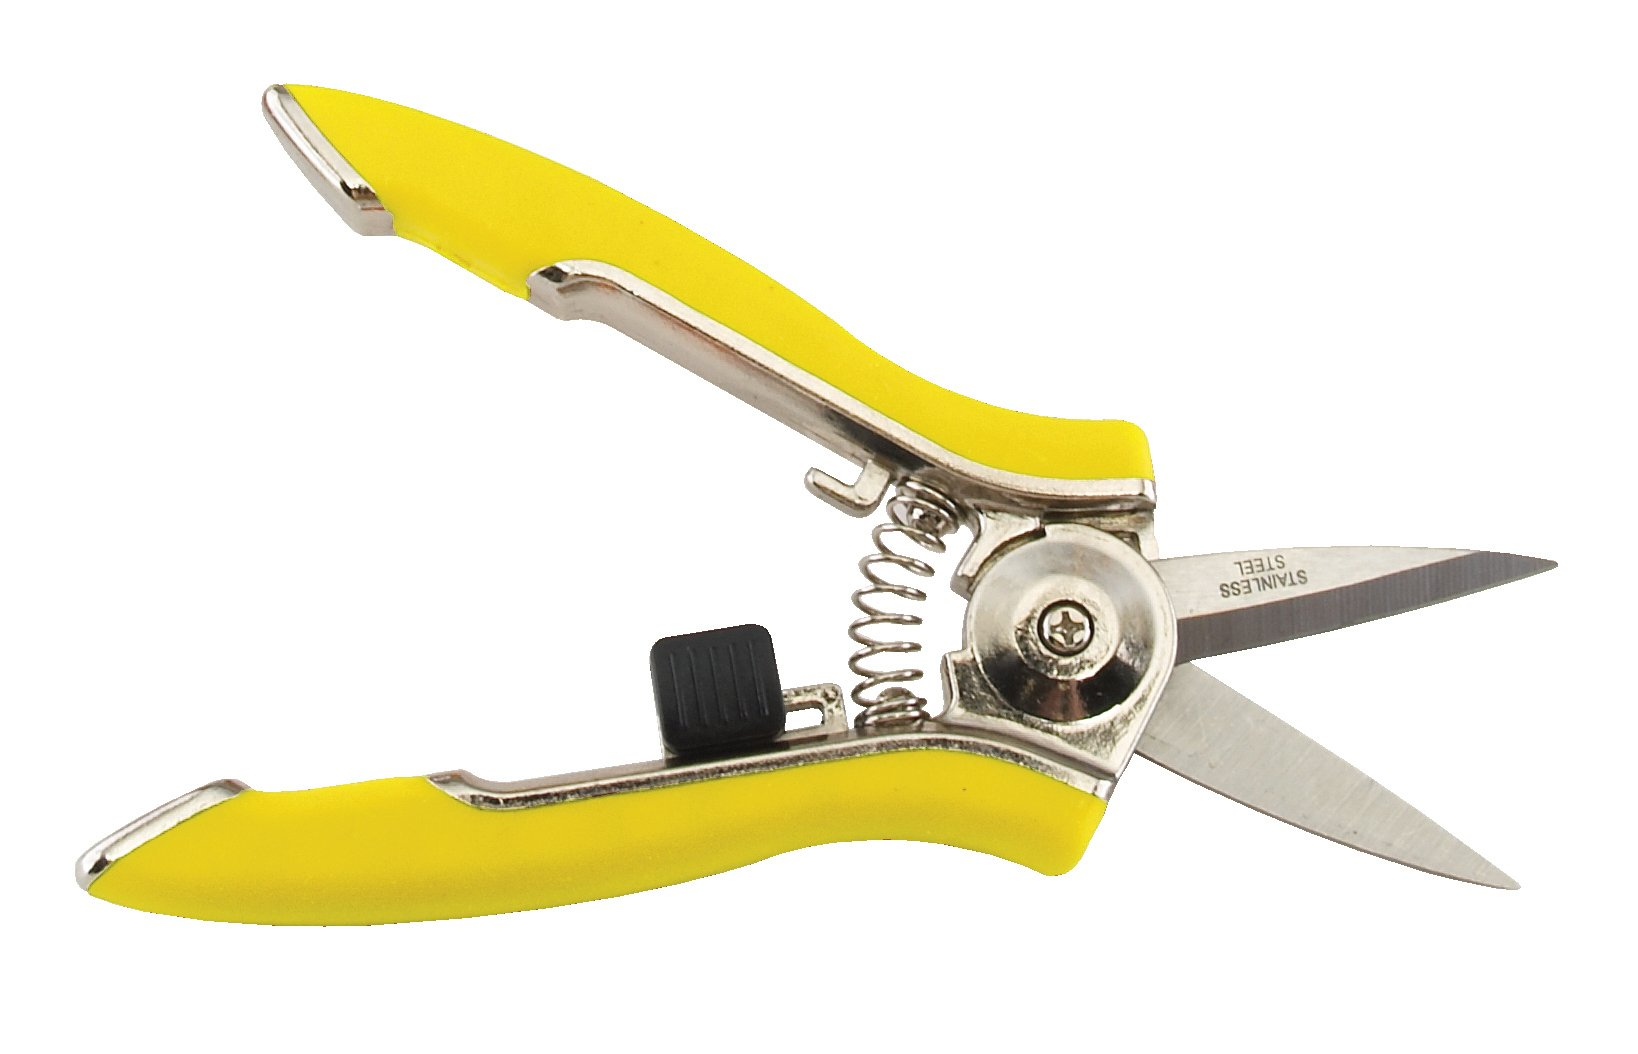 Dramm 18023 Stainless Steel Compact Shear, Yellow